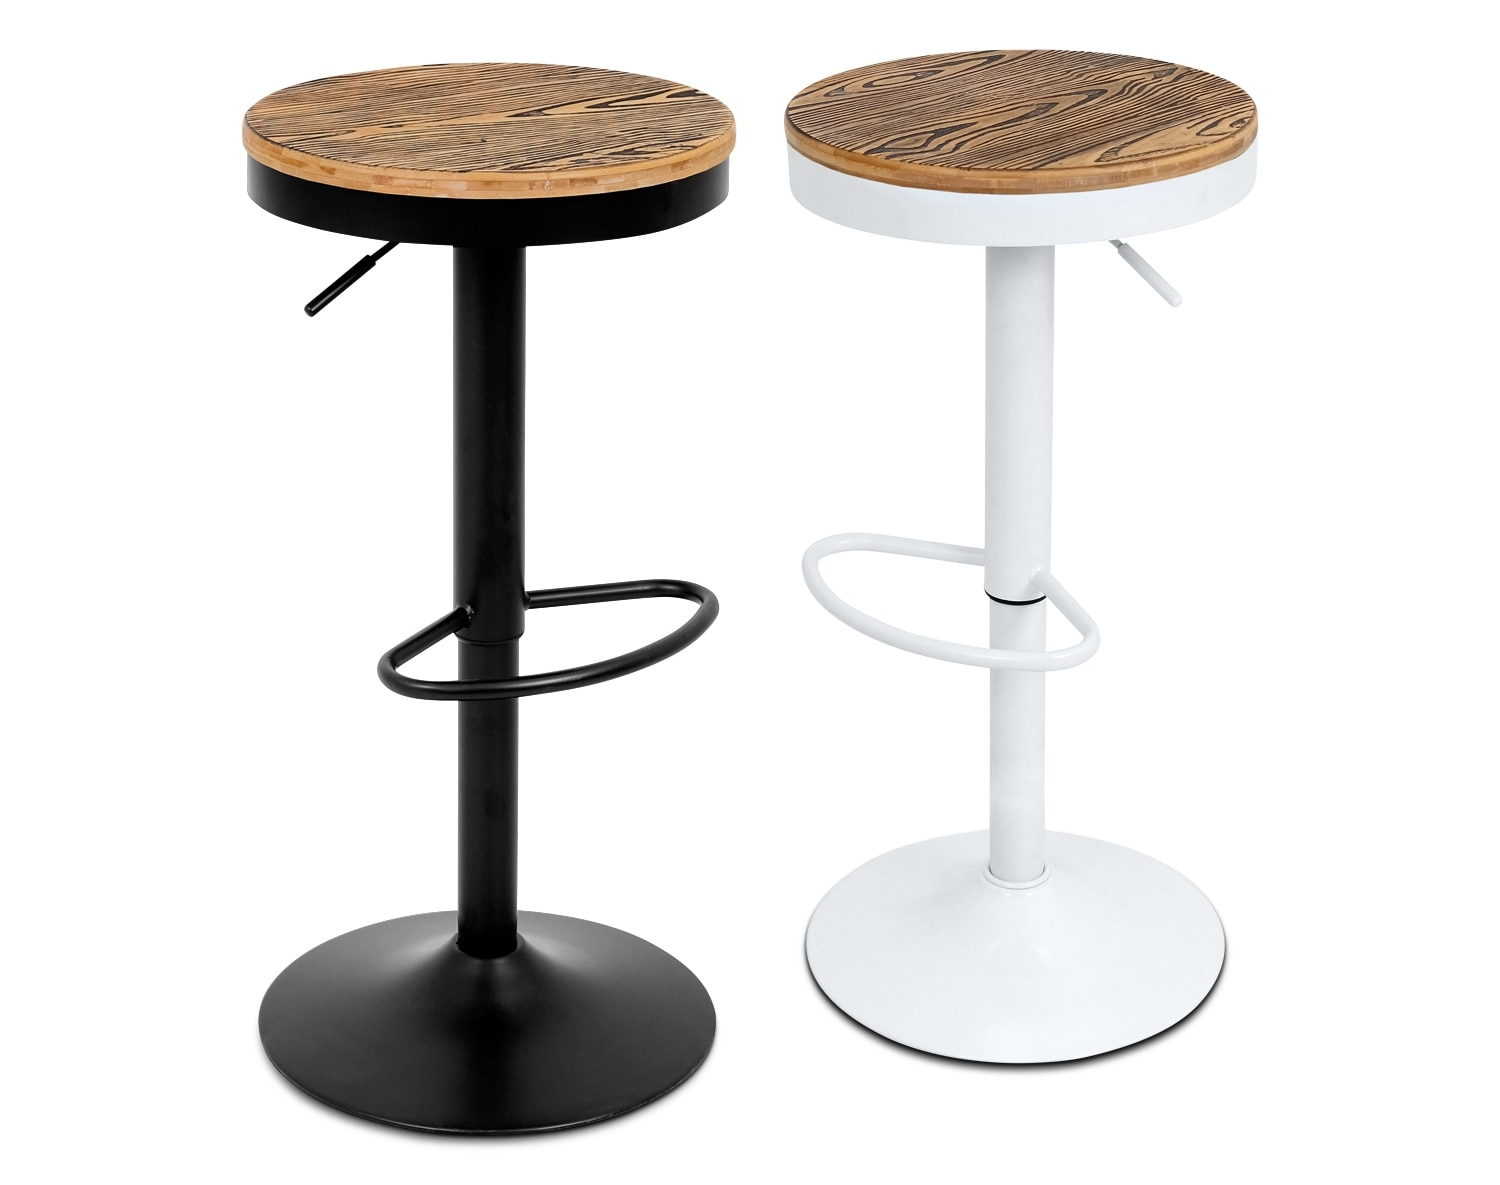 The Rustic Adjustable Barstool Collection